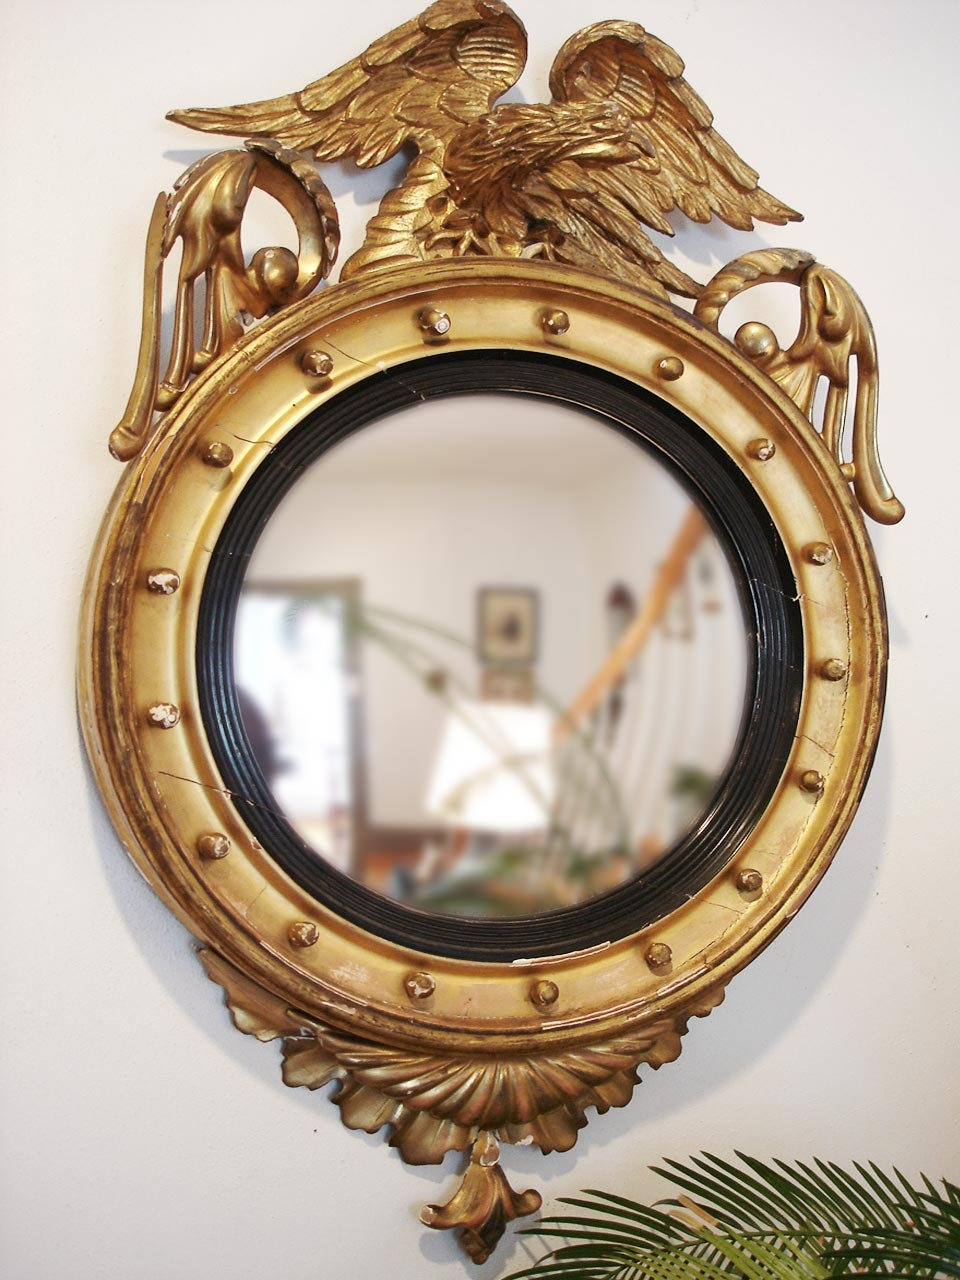 Eagle Federal Convex Mirror Spray Paint Black Or Different Color Regarding Decorative Convex Mirrors For Sale (View 4 of 15)